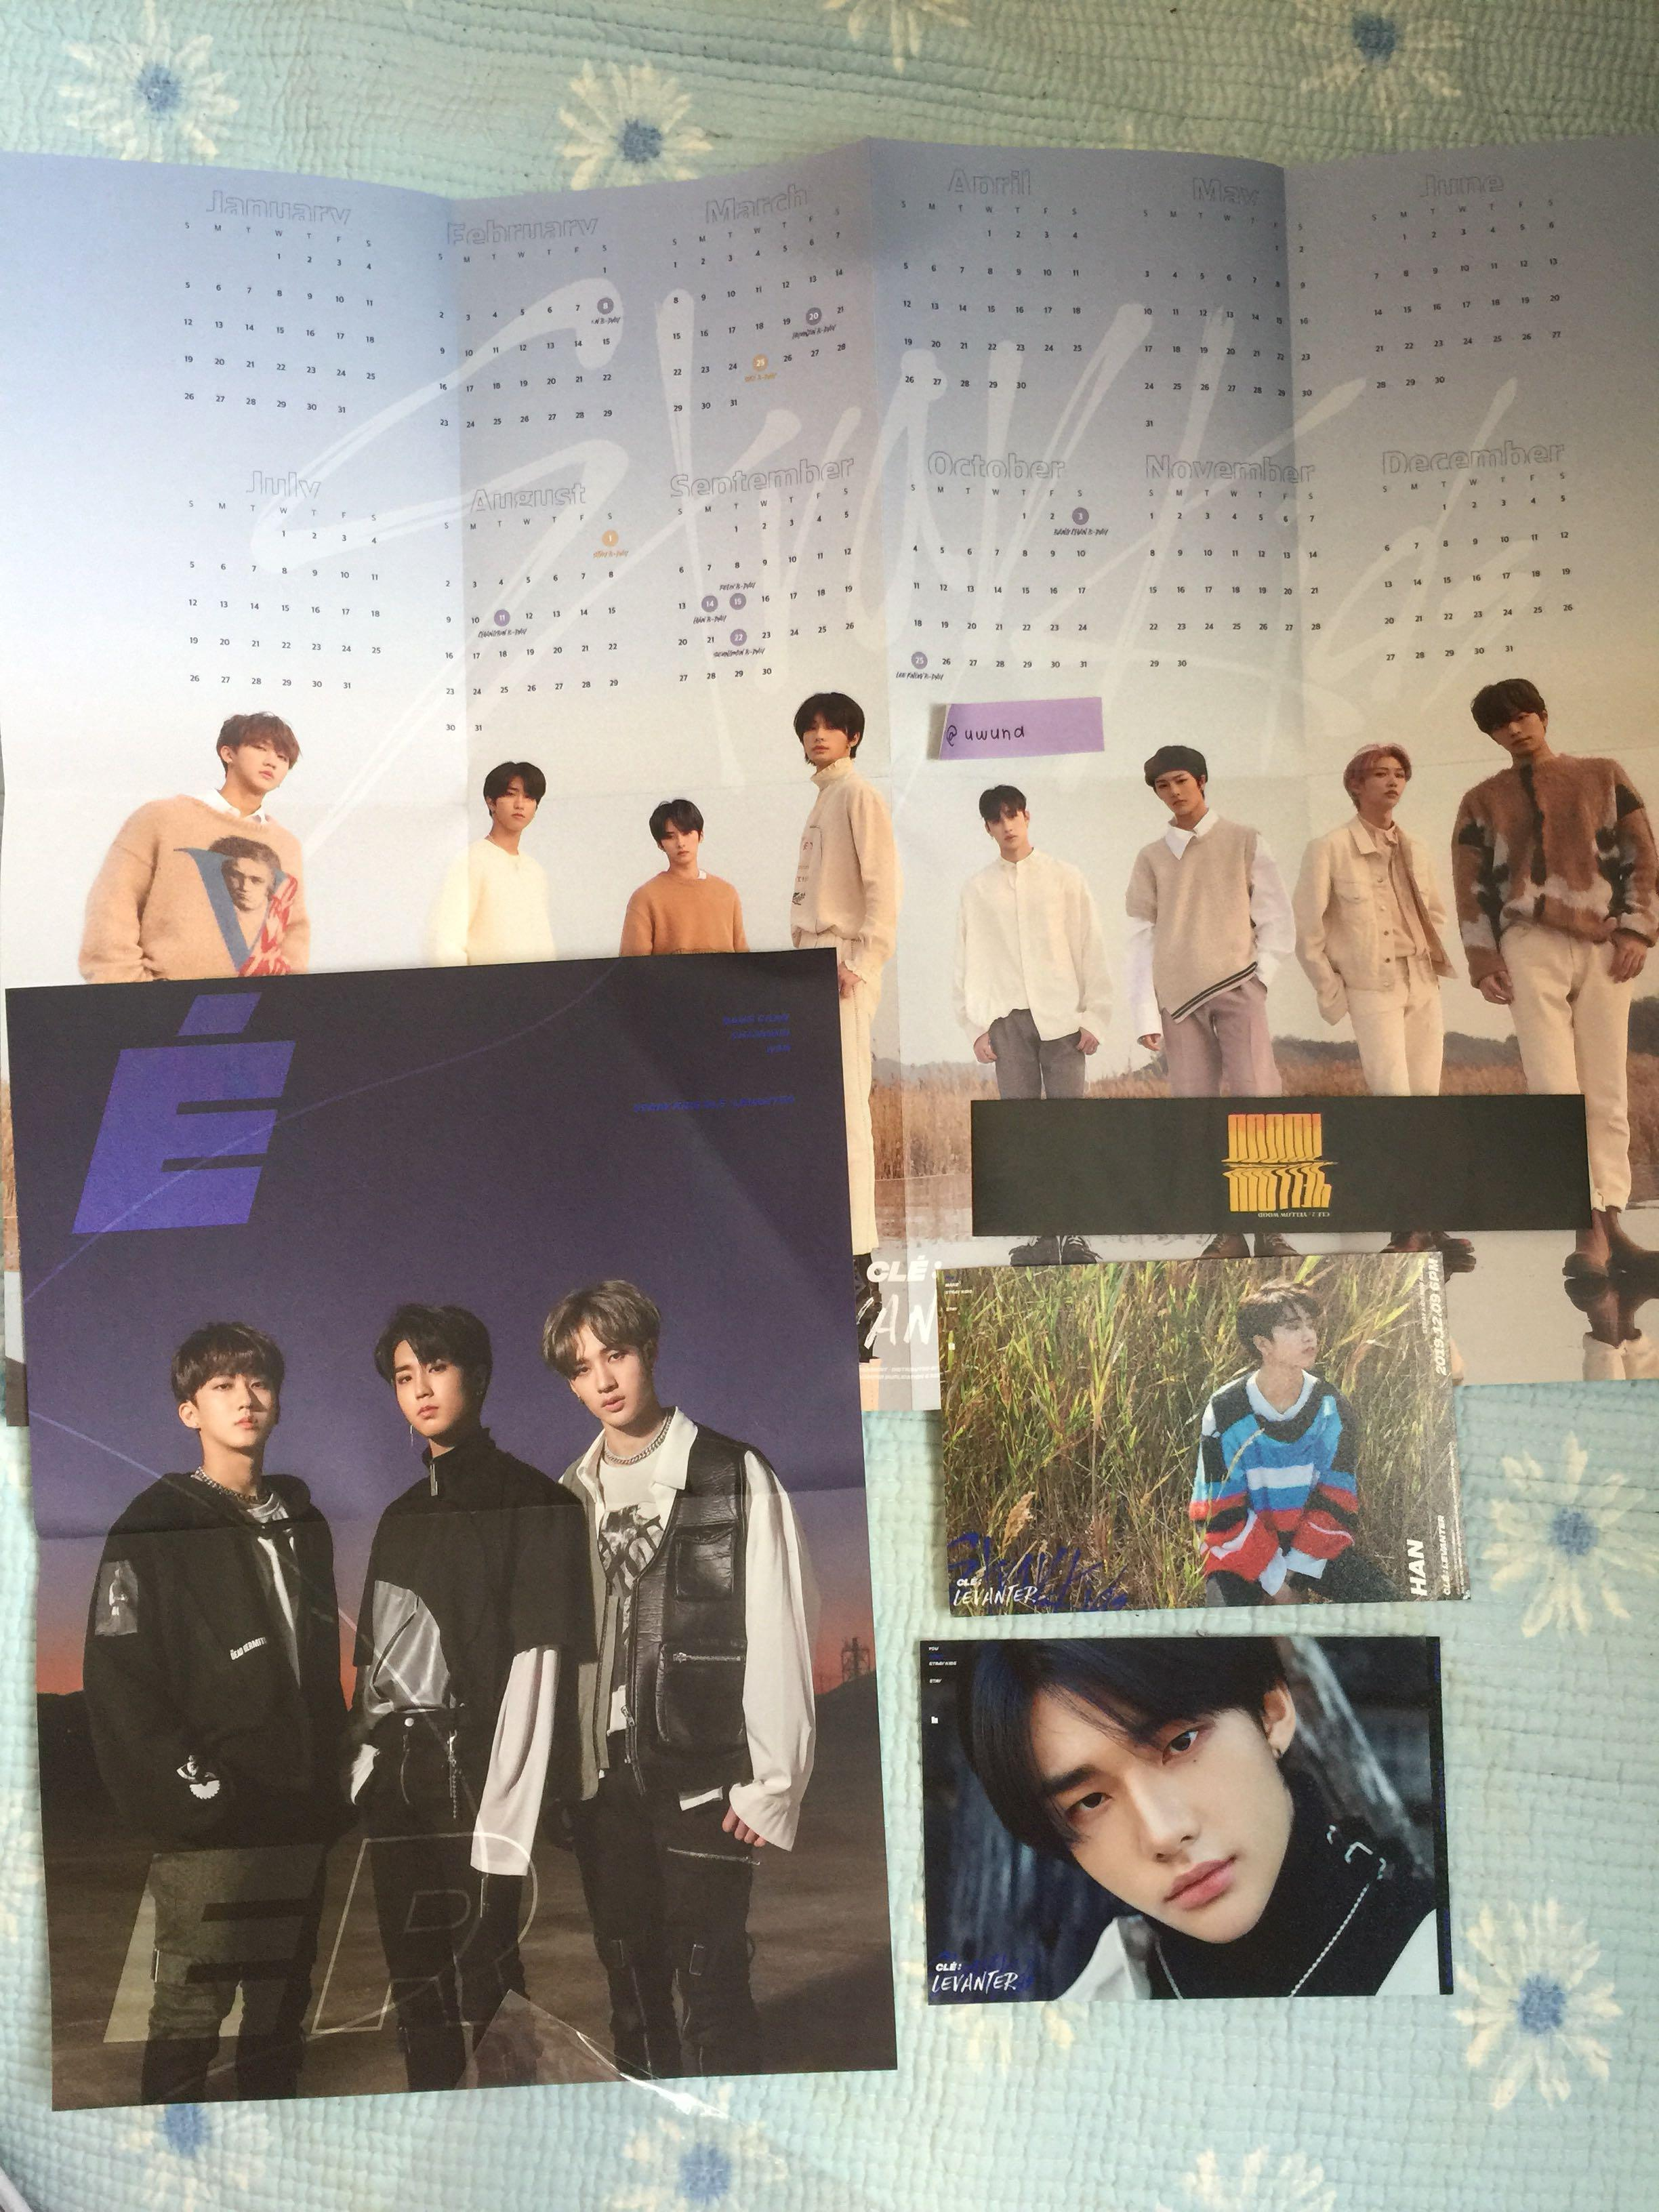 [WTS] STRAY KIDS LEVANTER LIMITED EDITION preorder benefit